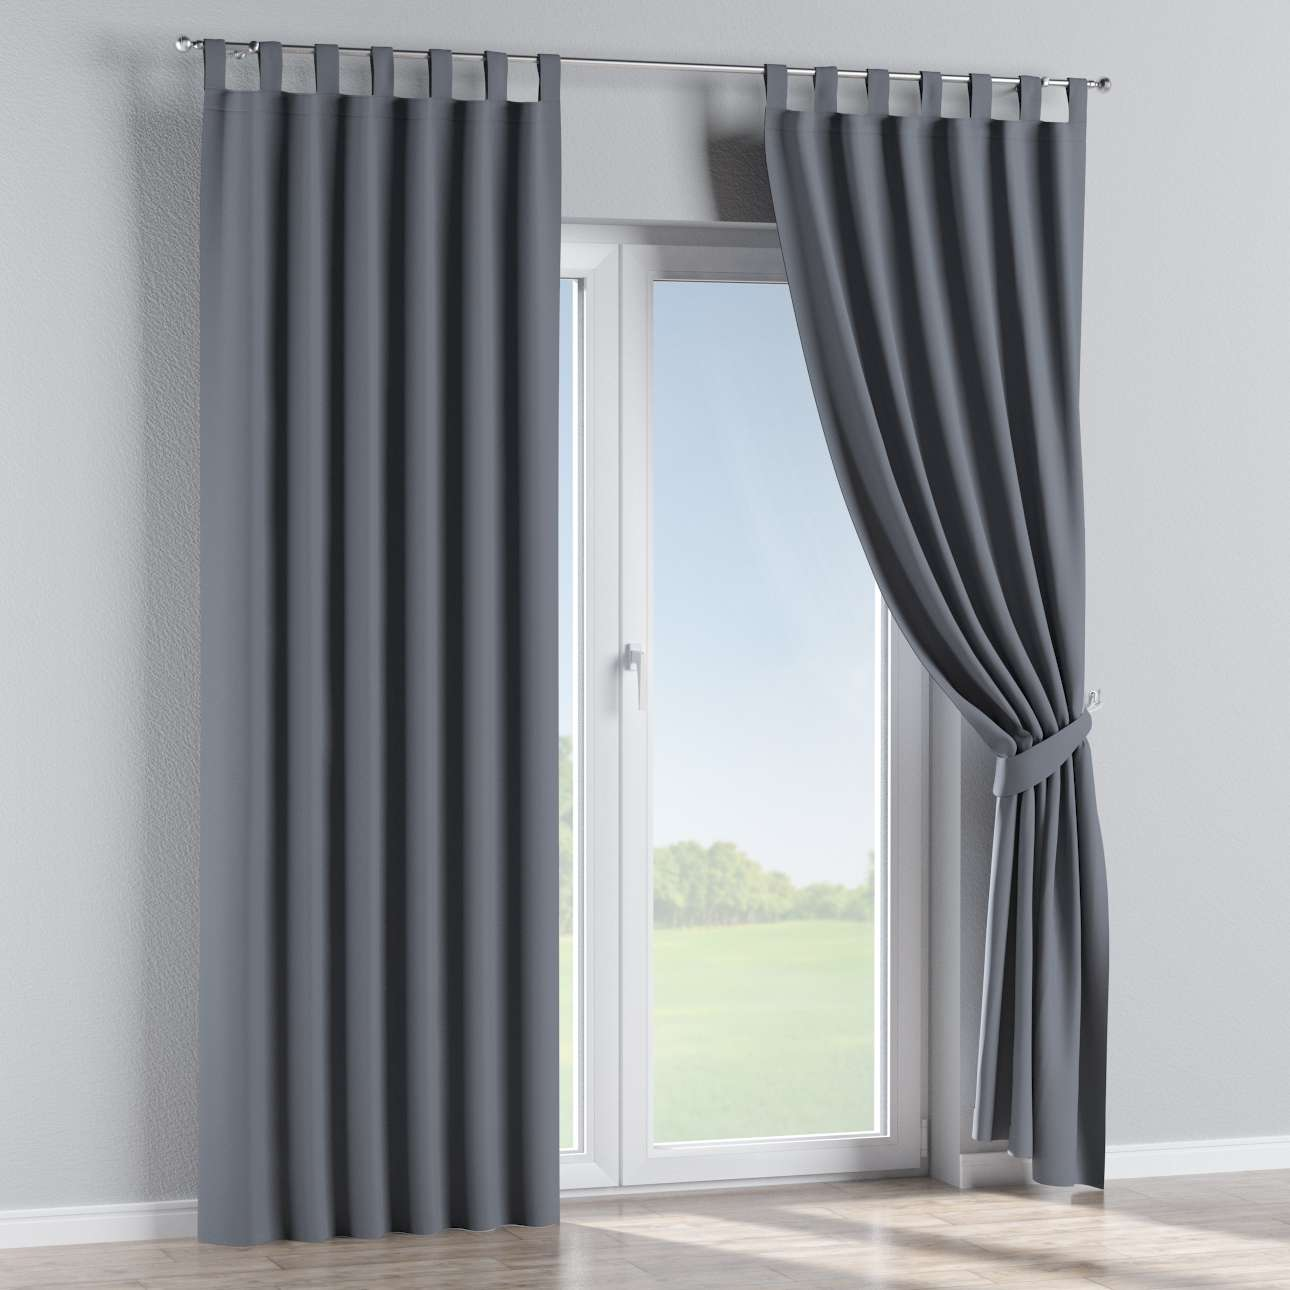 Blackout tab top curtains in collection Blackout, fabric: 269-76